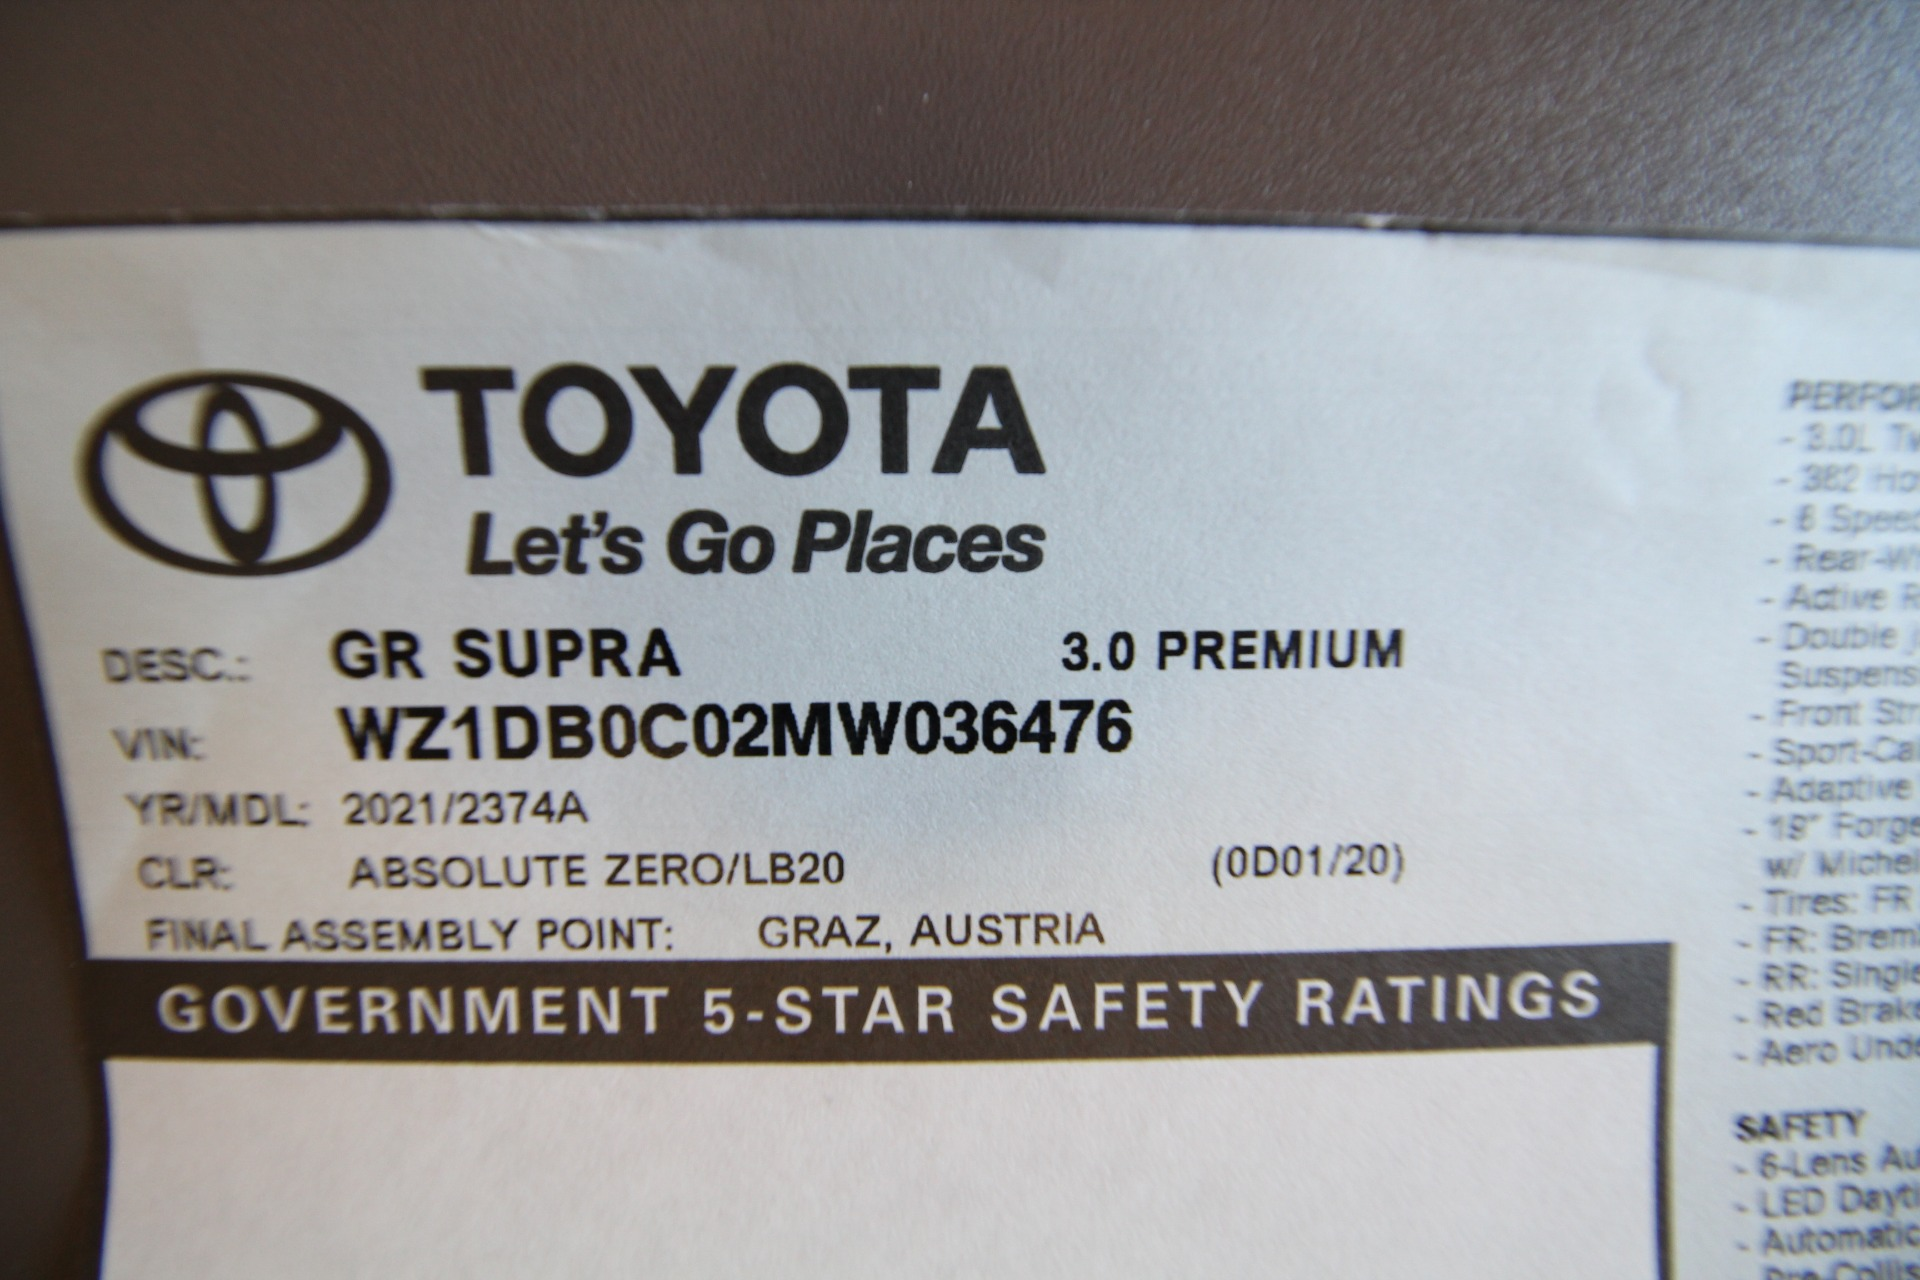 Used 2021 Toyota GR Supra 3.0 Premium LIKE NEW 1 OWNER OLDER PERSON ALL ORIGINAL | Albany, NY